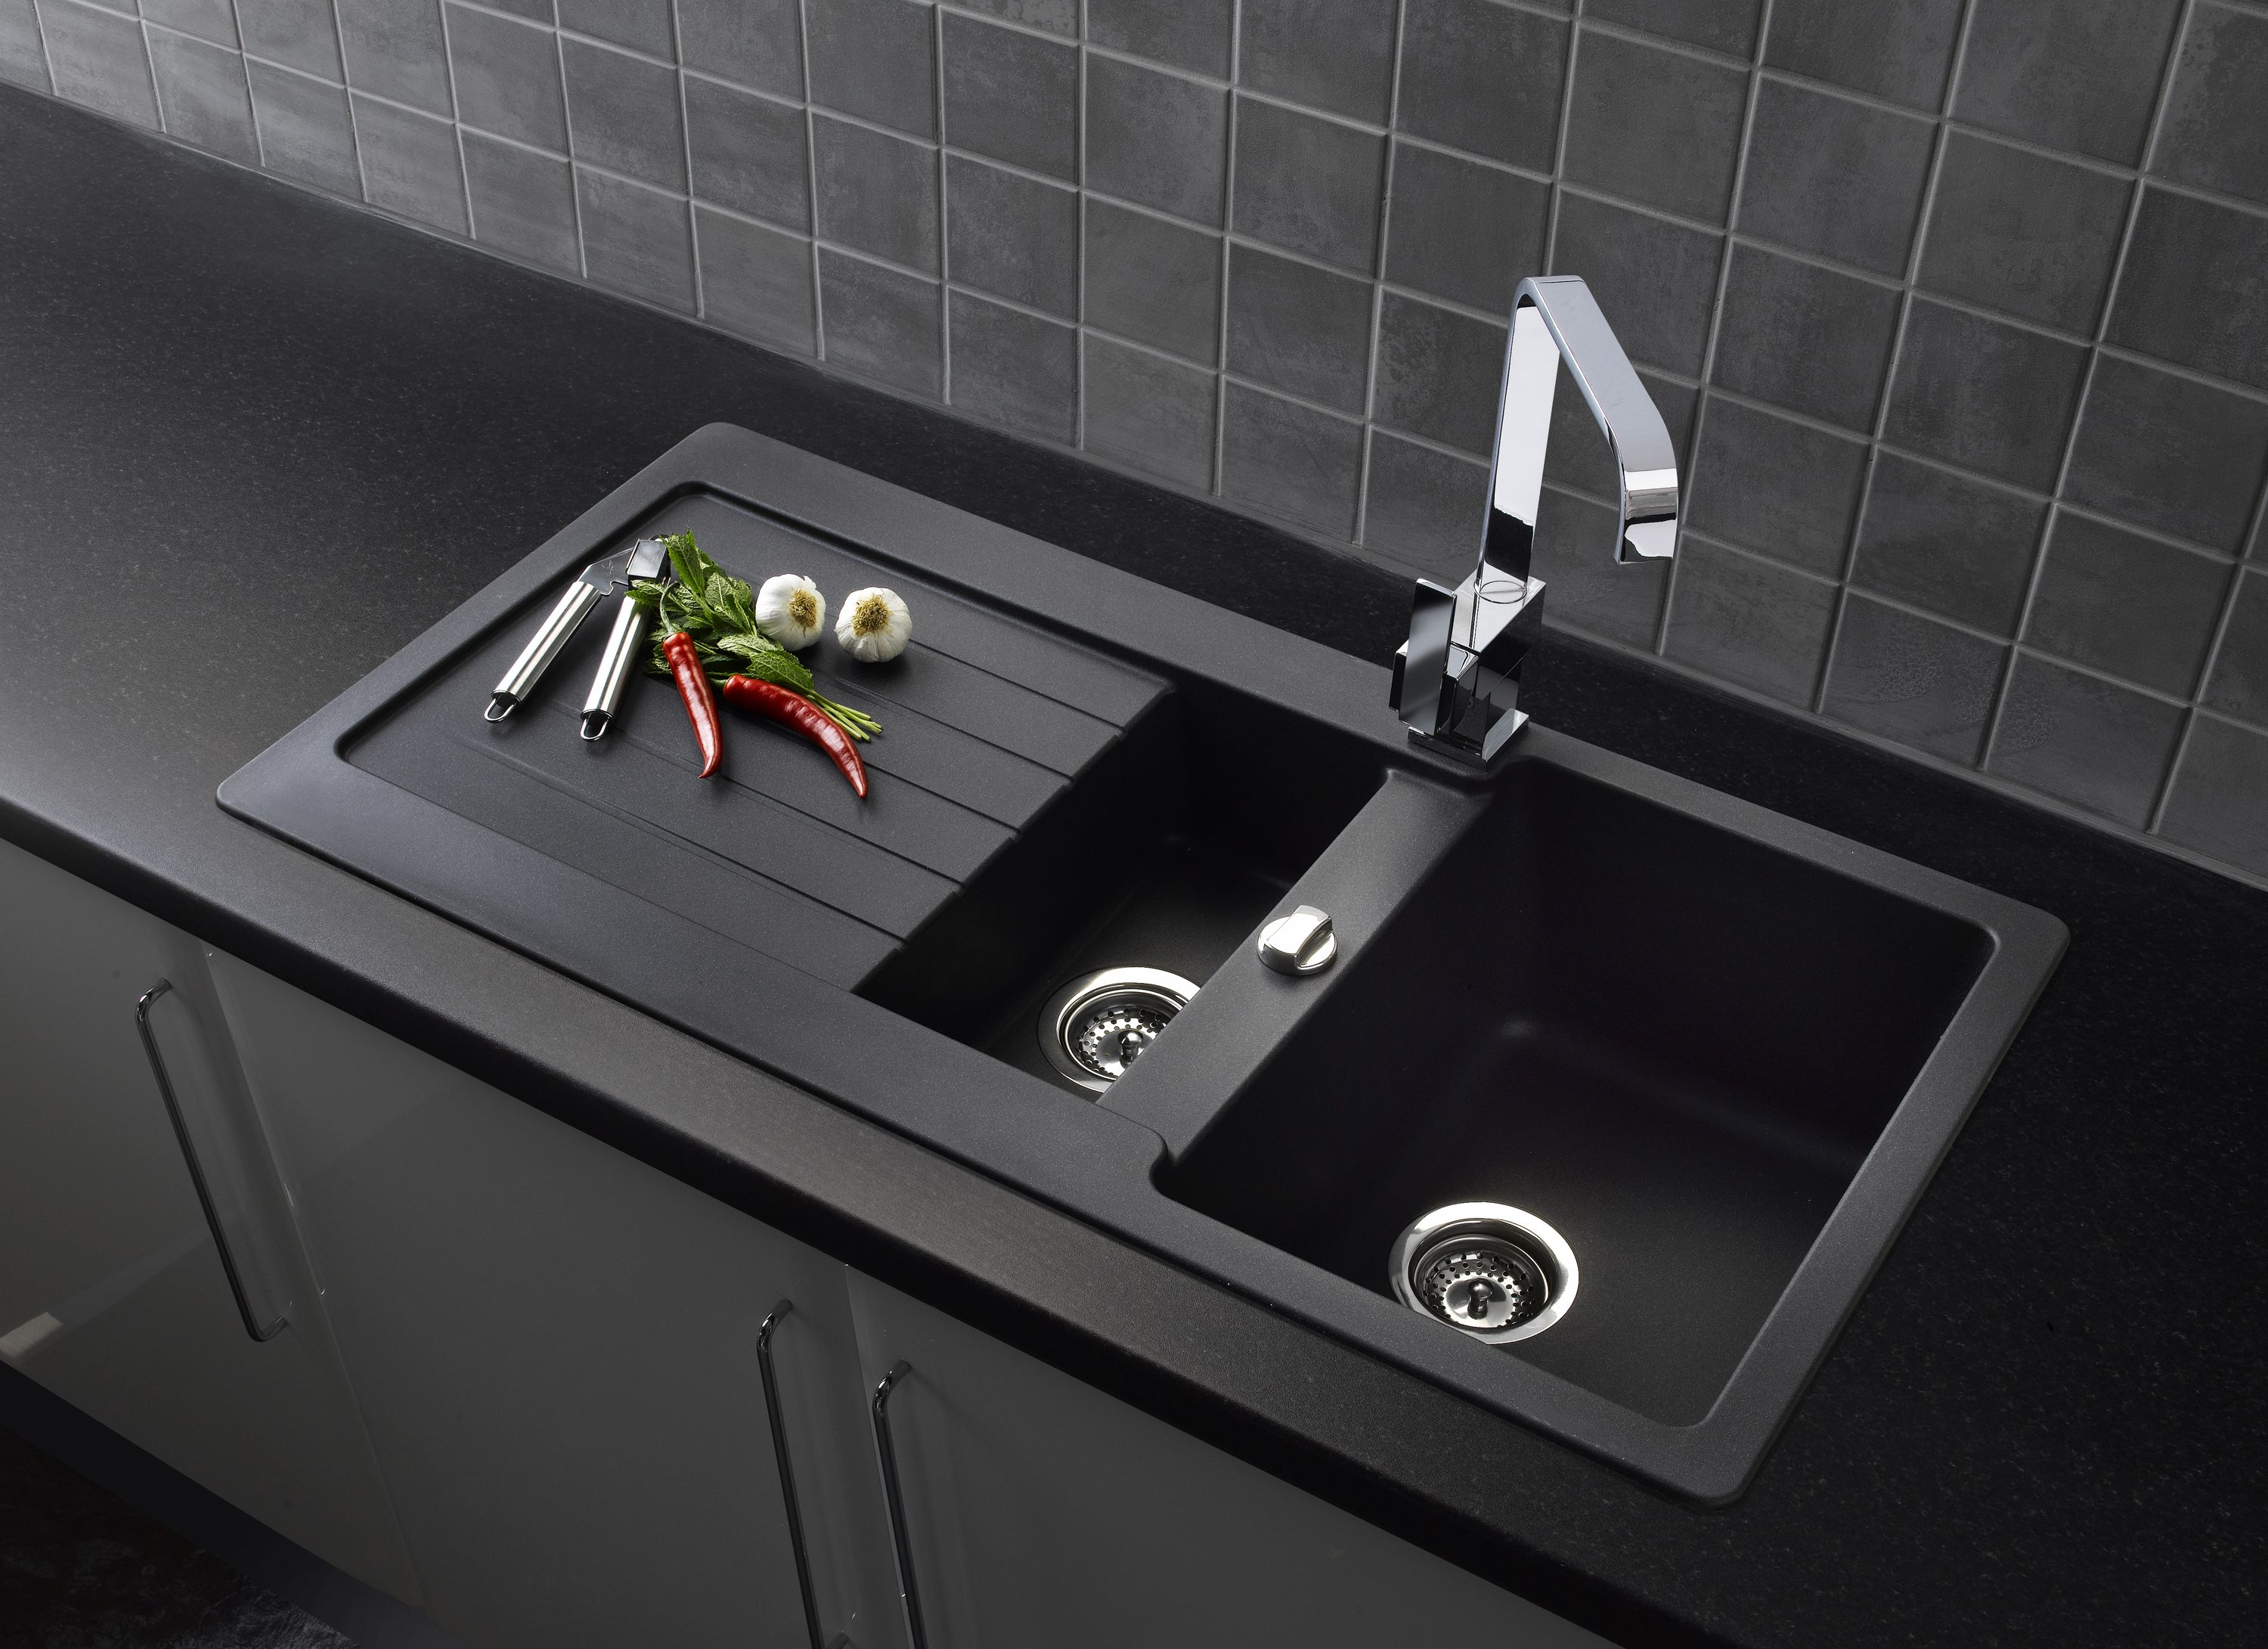 Ultra modern kitchen sink, complimenting a range of